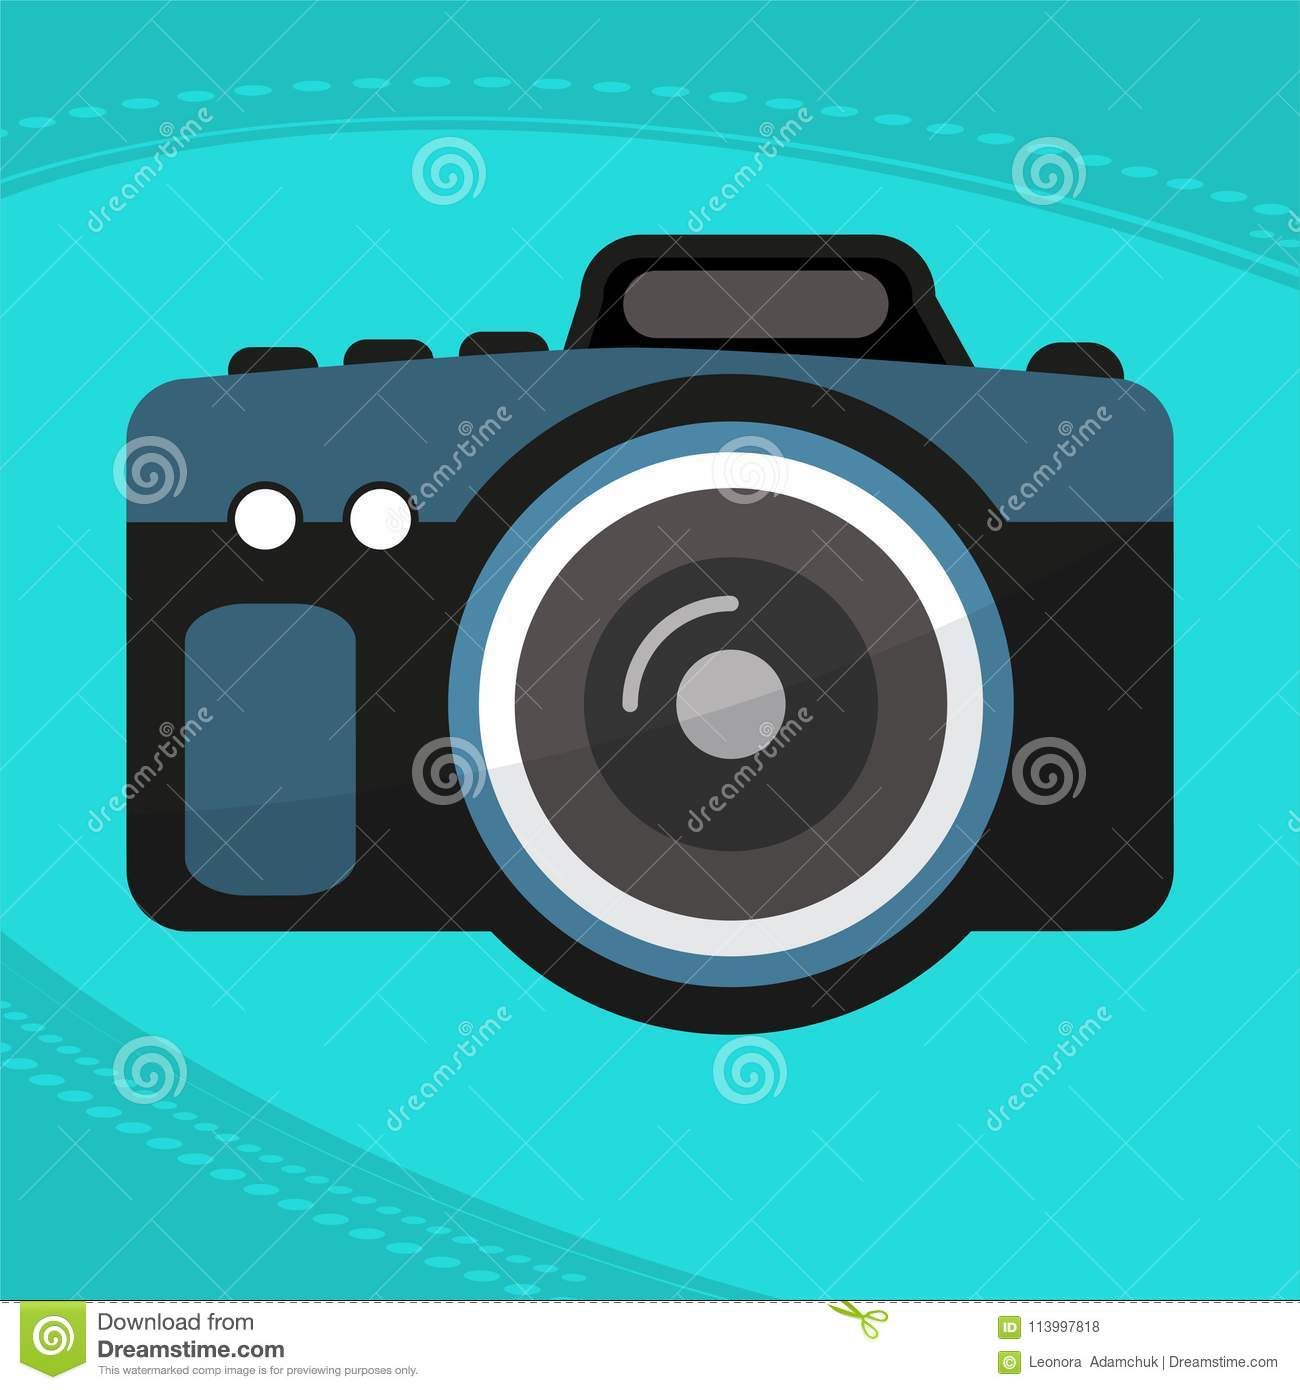 Photo camera icon modern minimal flat design style stock for Camera minimal